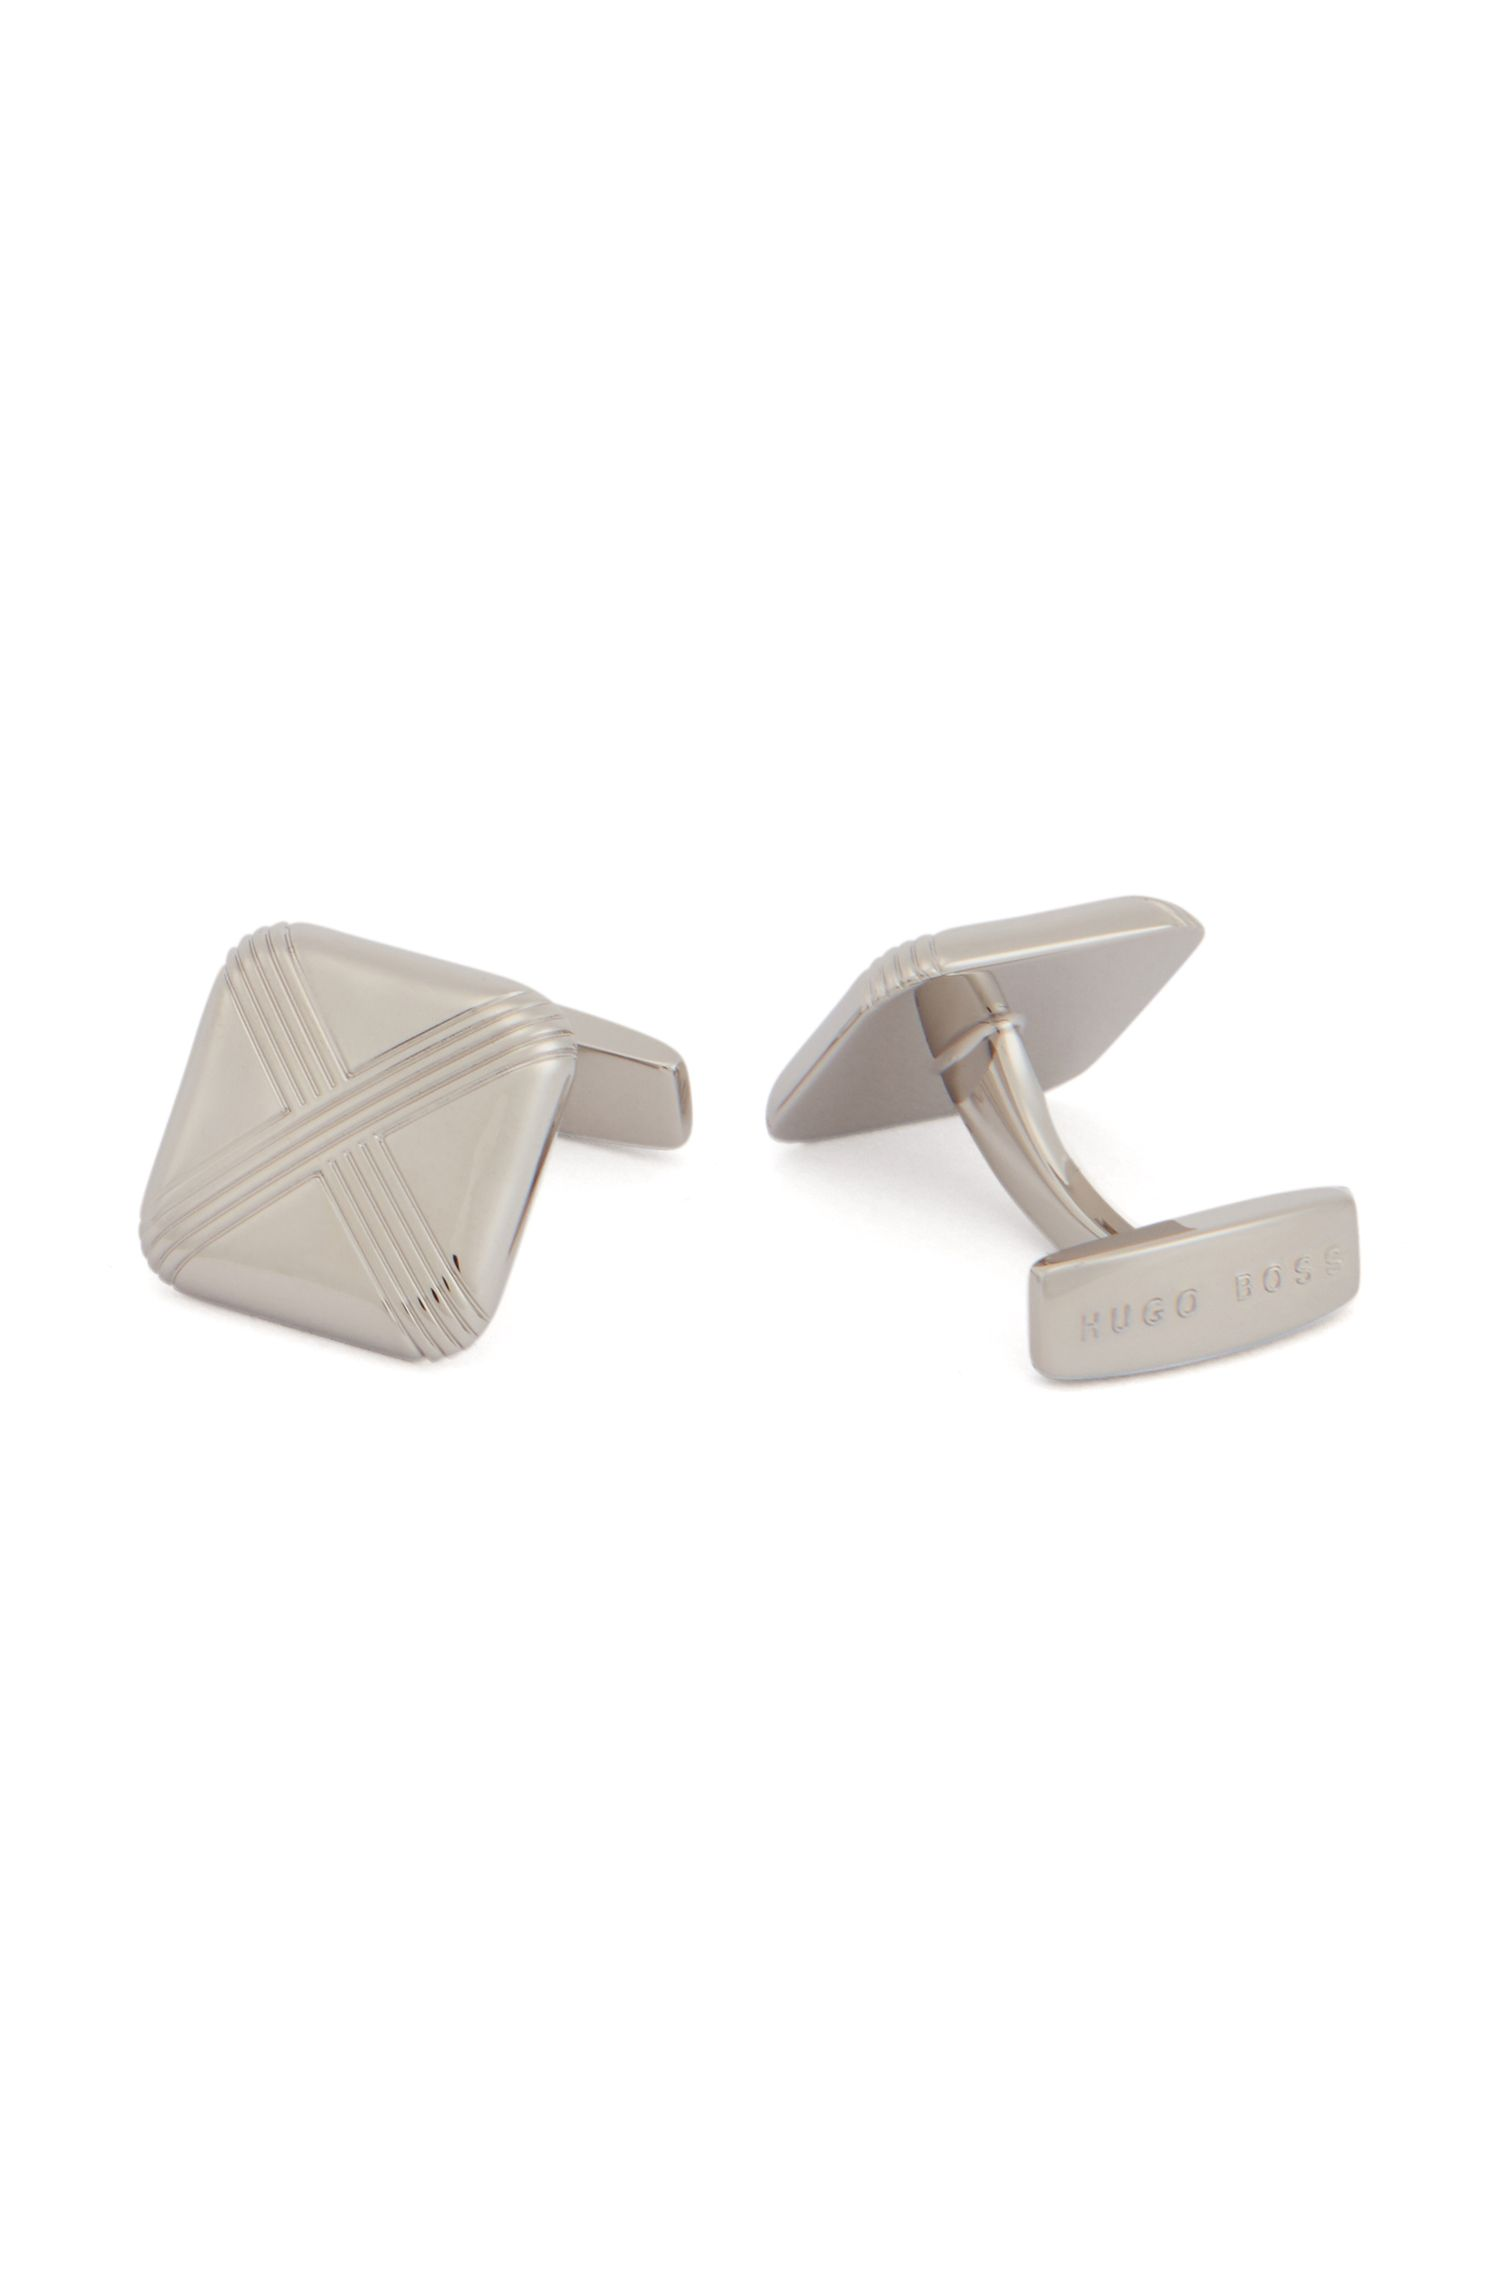 Square cufflinks with intersecting etched lines, Silver